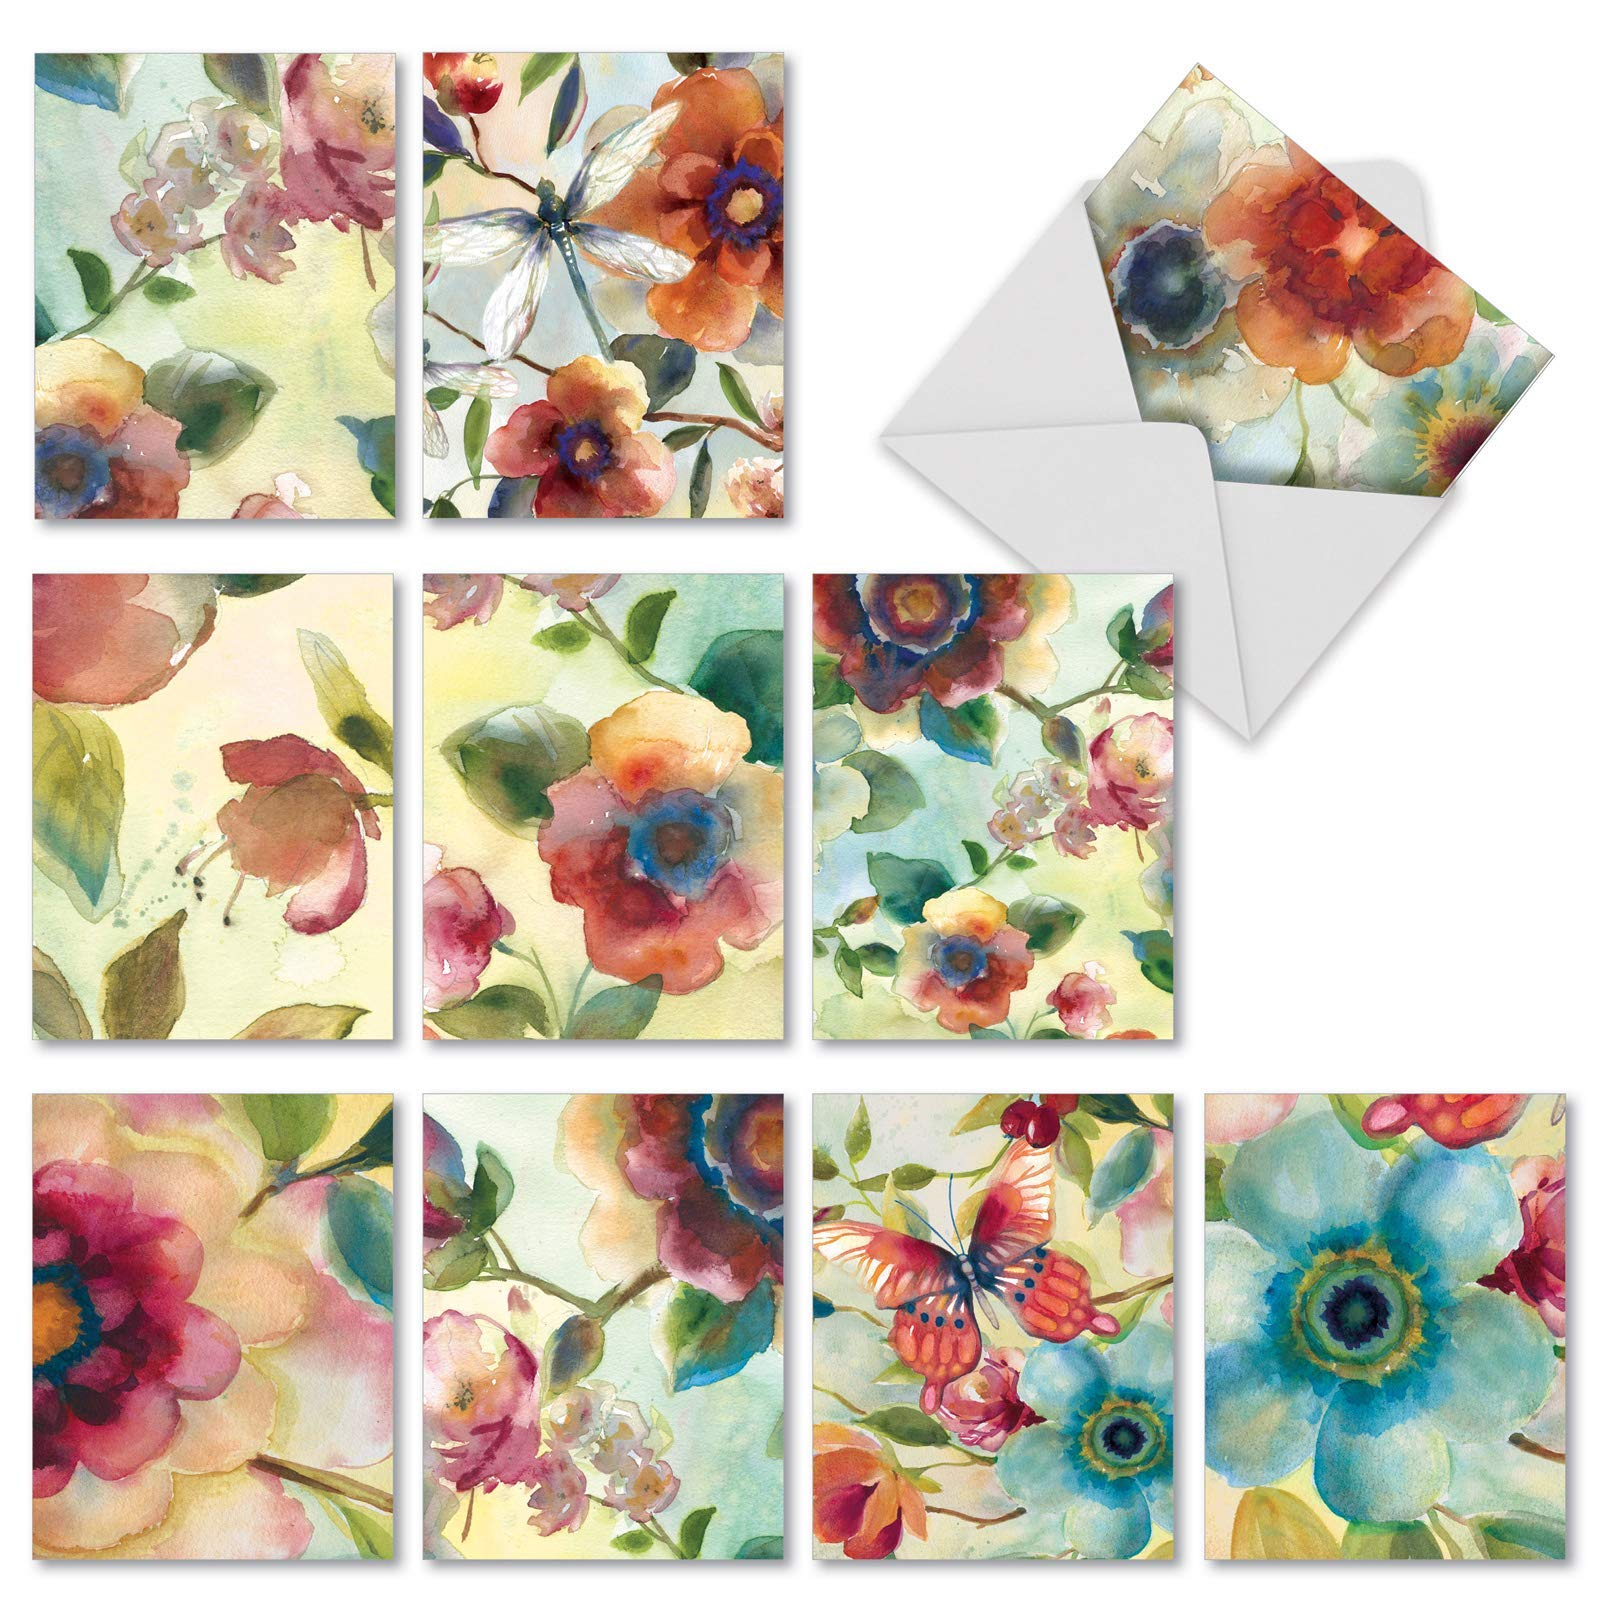 The Best Card Company - 10 Watercolor All Occasion Blank Note Cards (4 x 5.12 Inch) - Colorful Paintings of Flowers - Watercolor Botanicals M3314